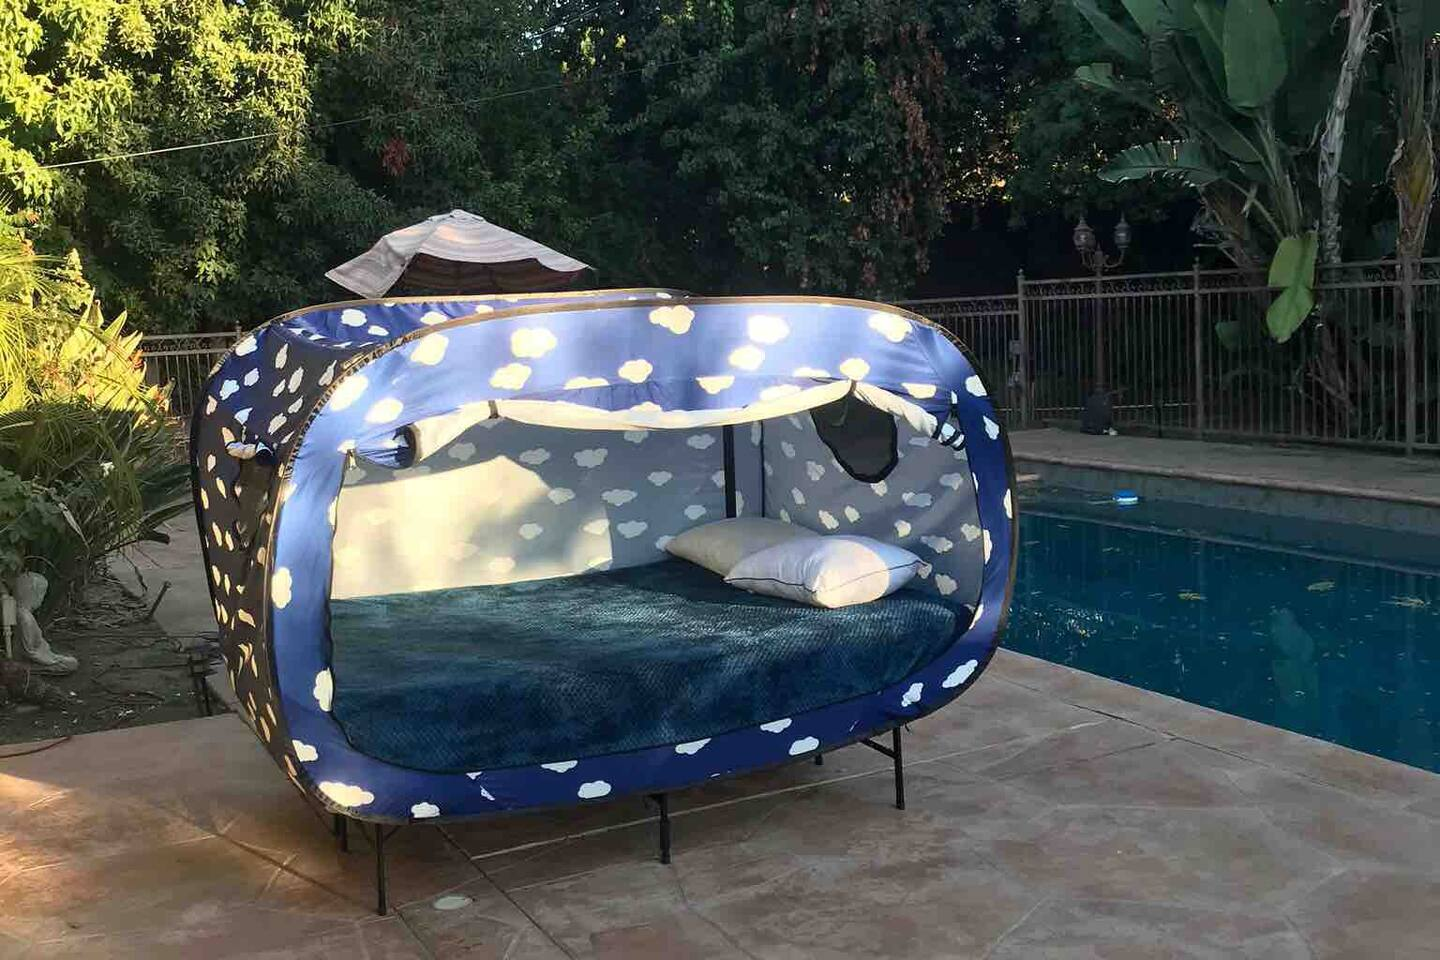 Sleep under the moon and stars in total privacy ... in my opinion these tents are the FUTURE of Airbnb